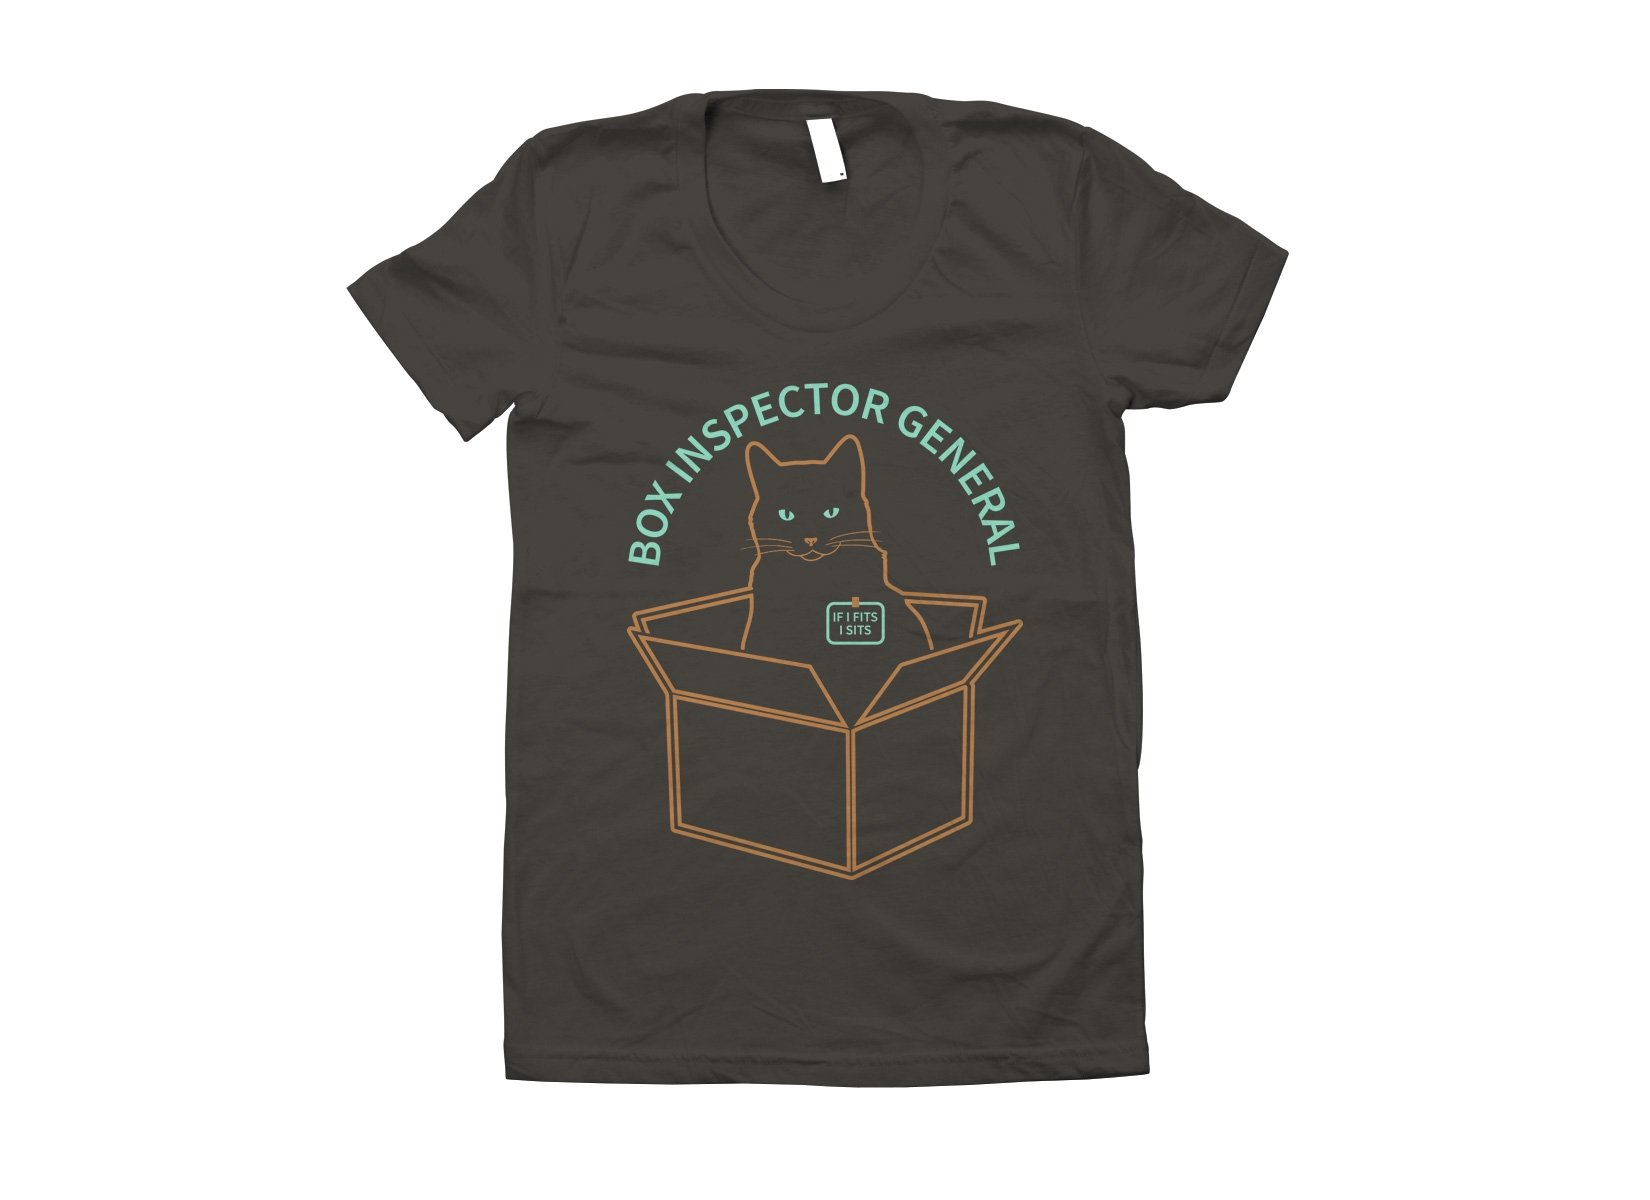 Box Inspector General on Juniors T-Shirt